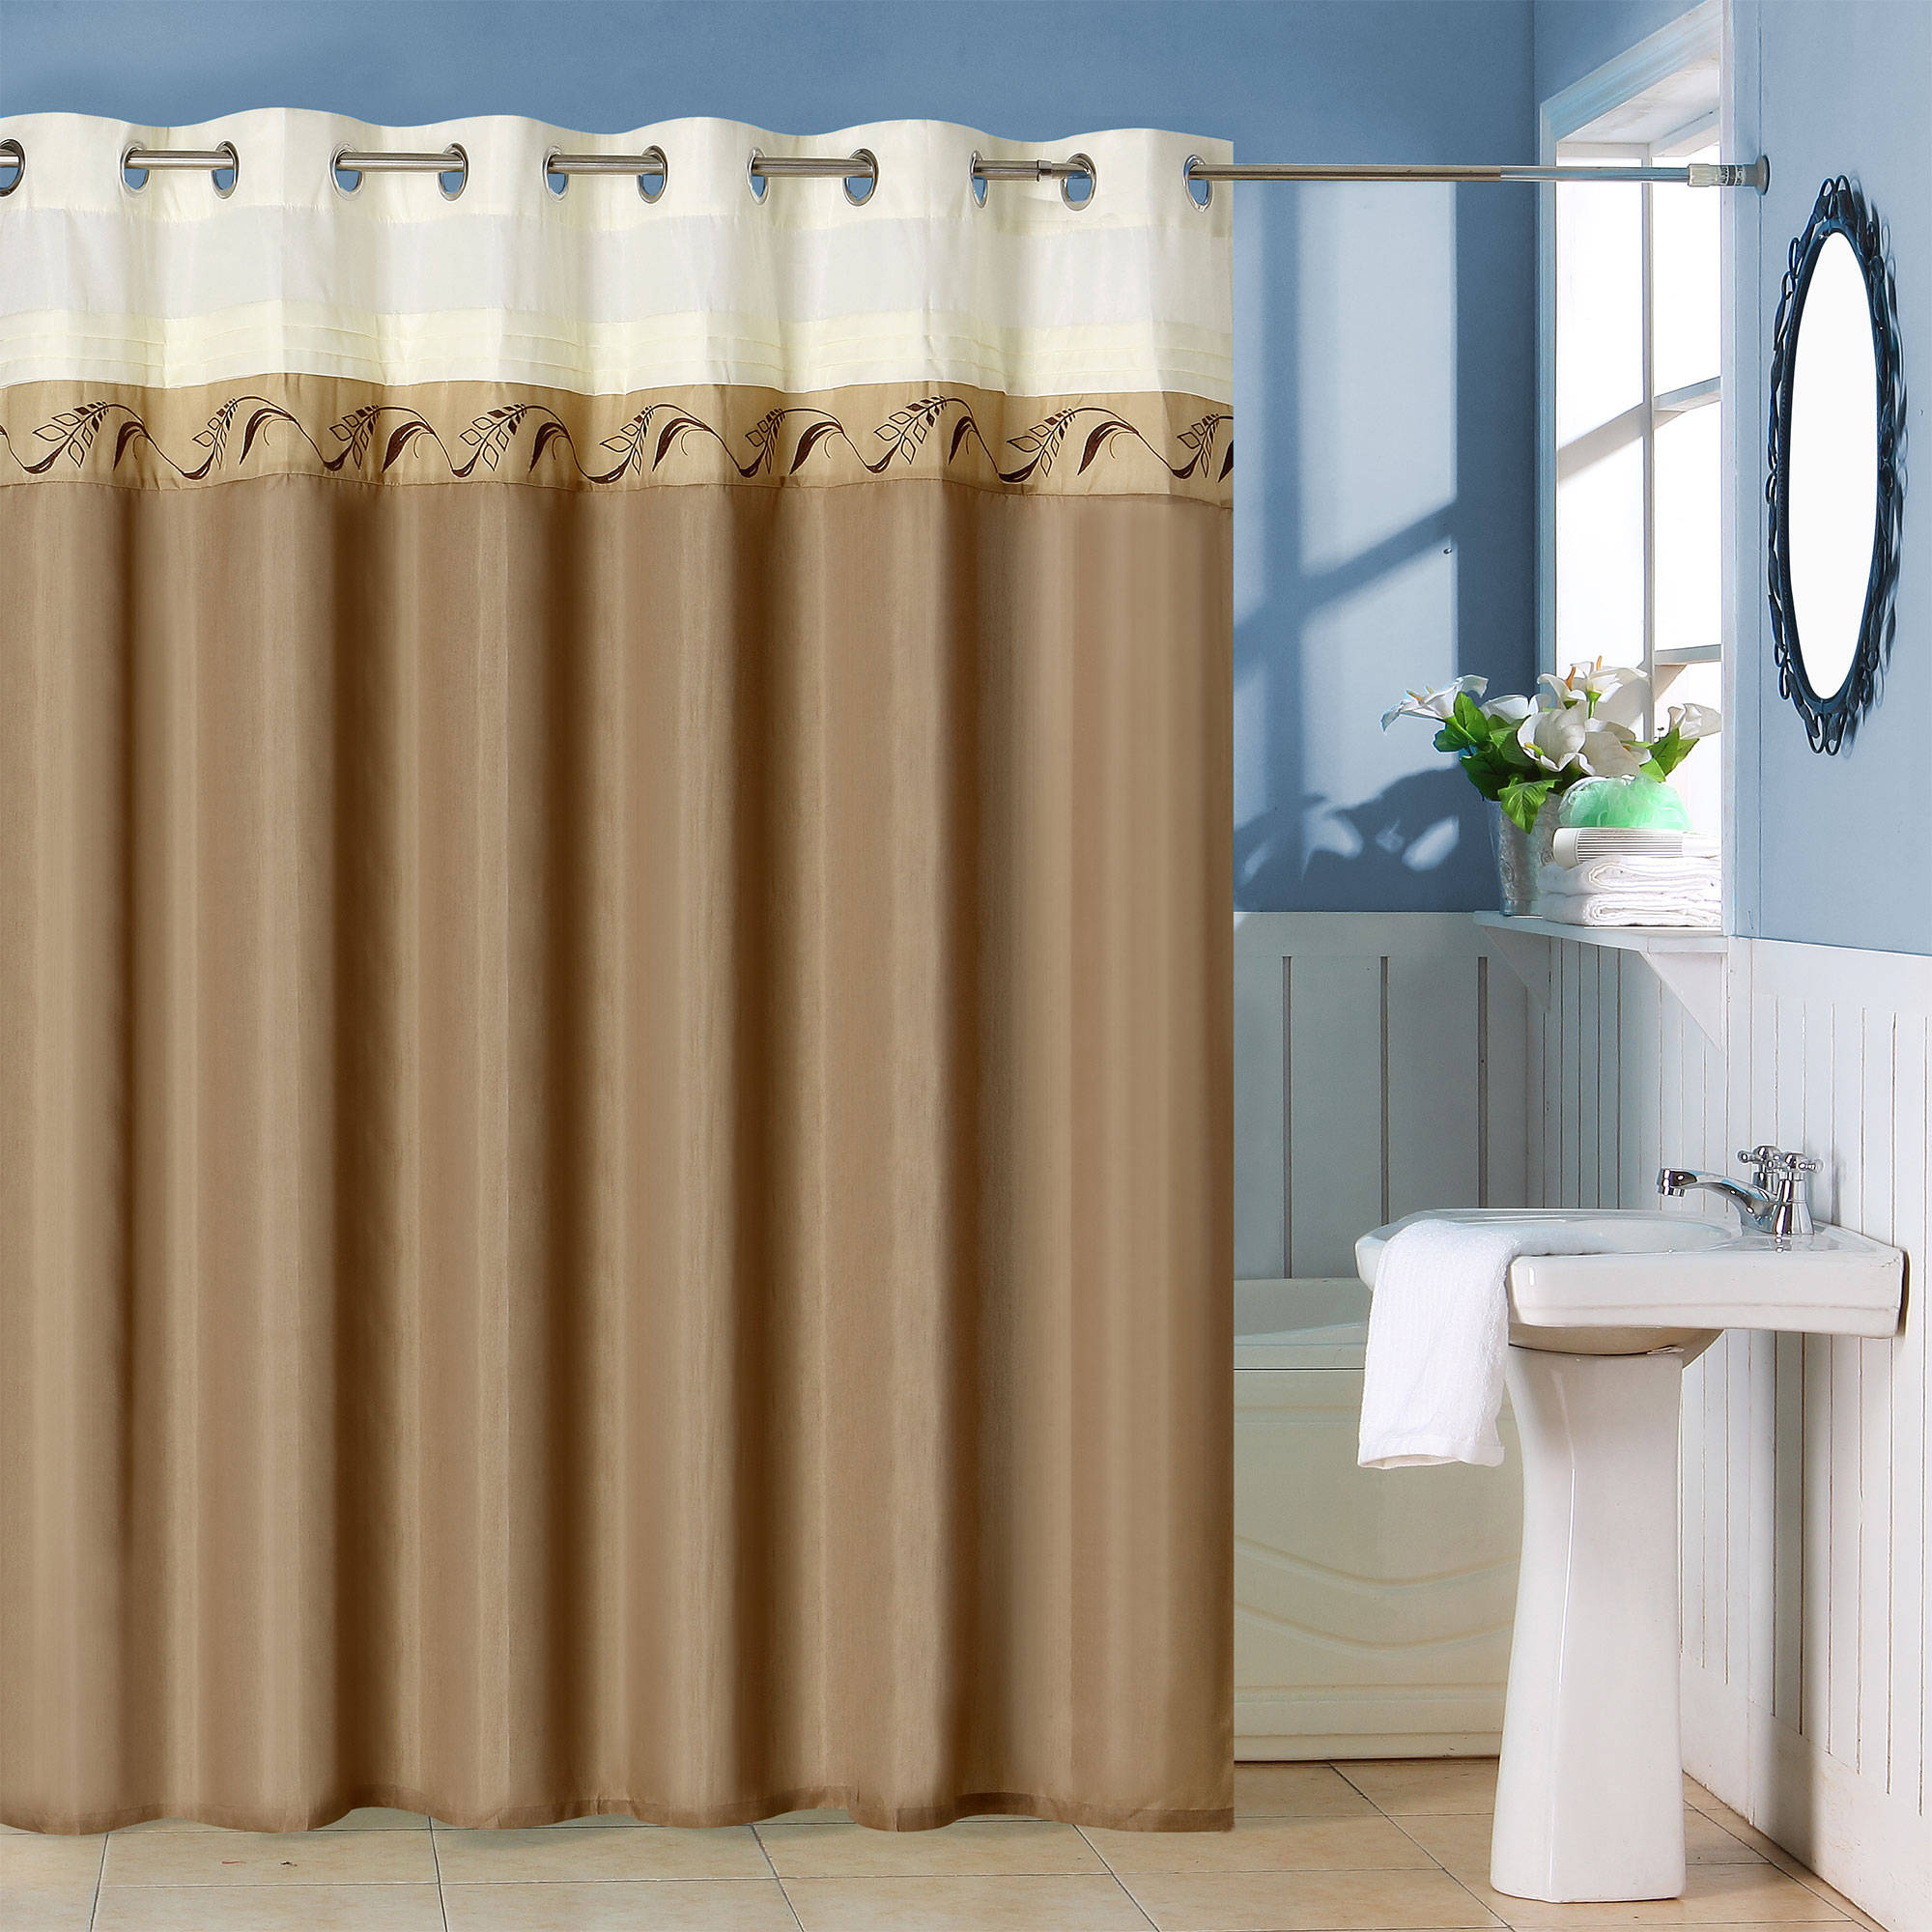 Somerset Teardrop Home Shower Curtain with Buttonholes